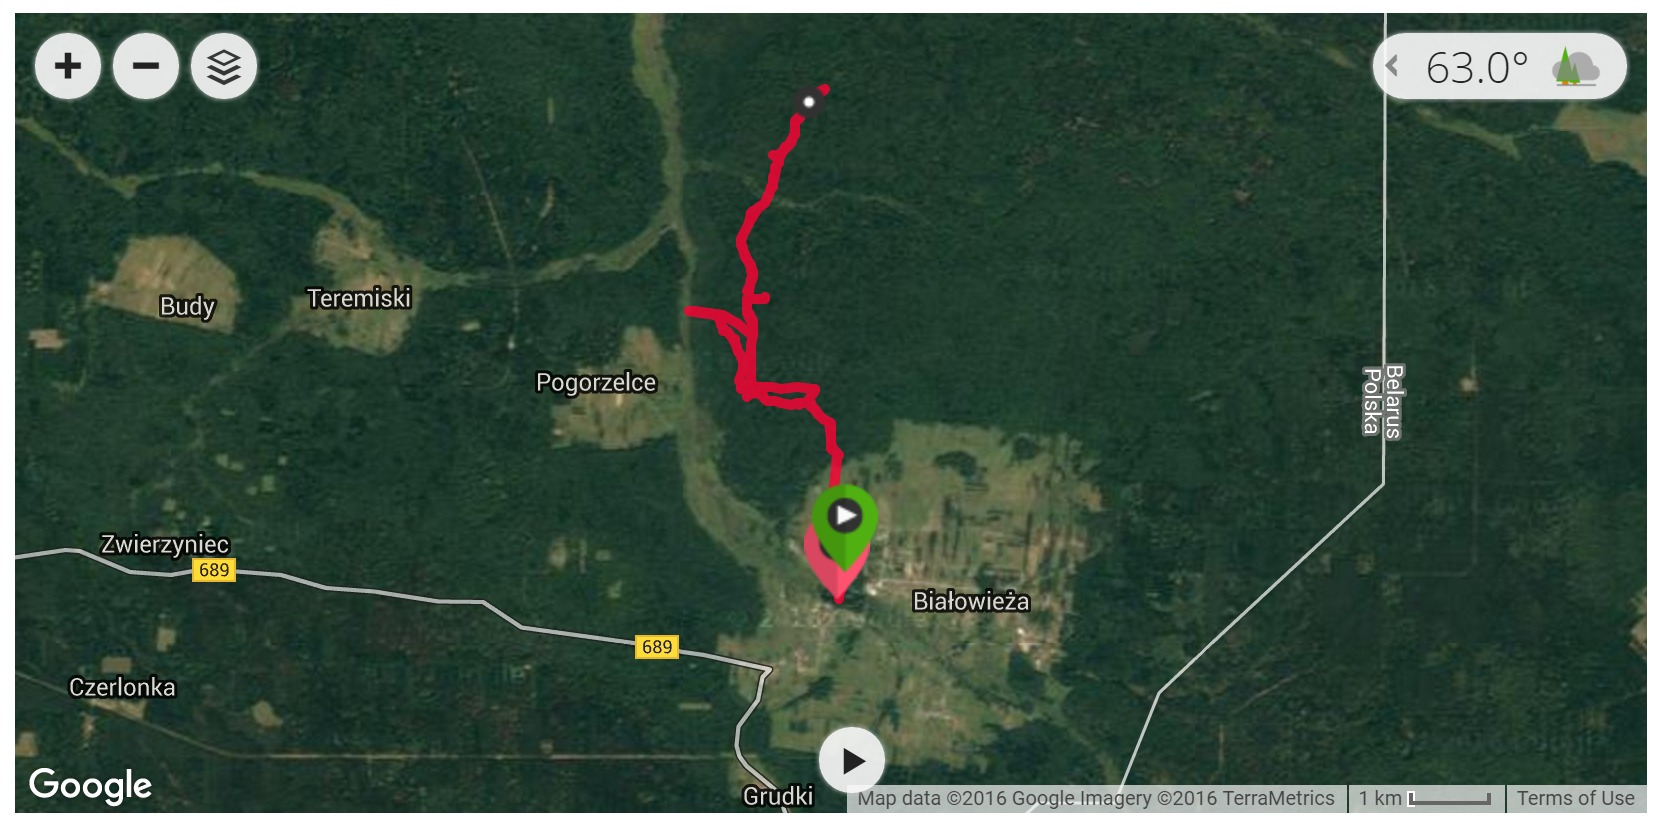 Bialowieza Forest hike - Satellite